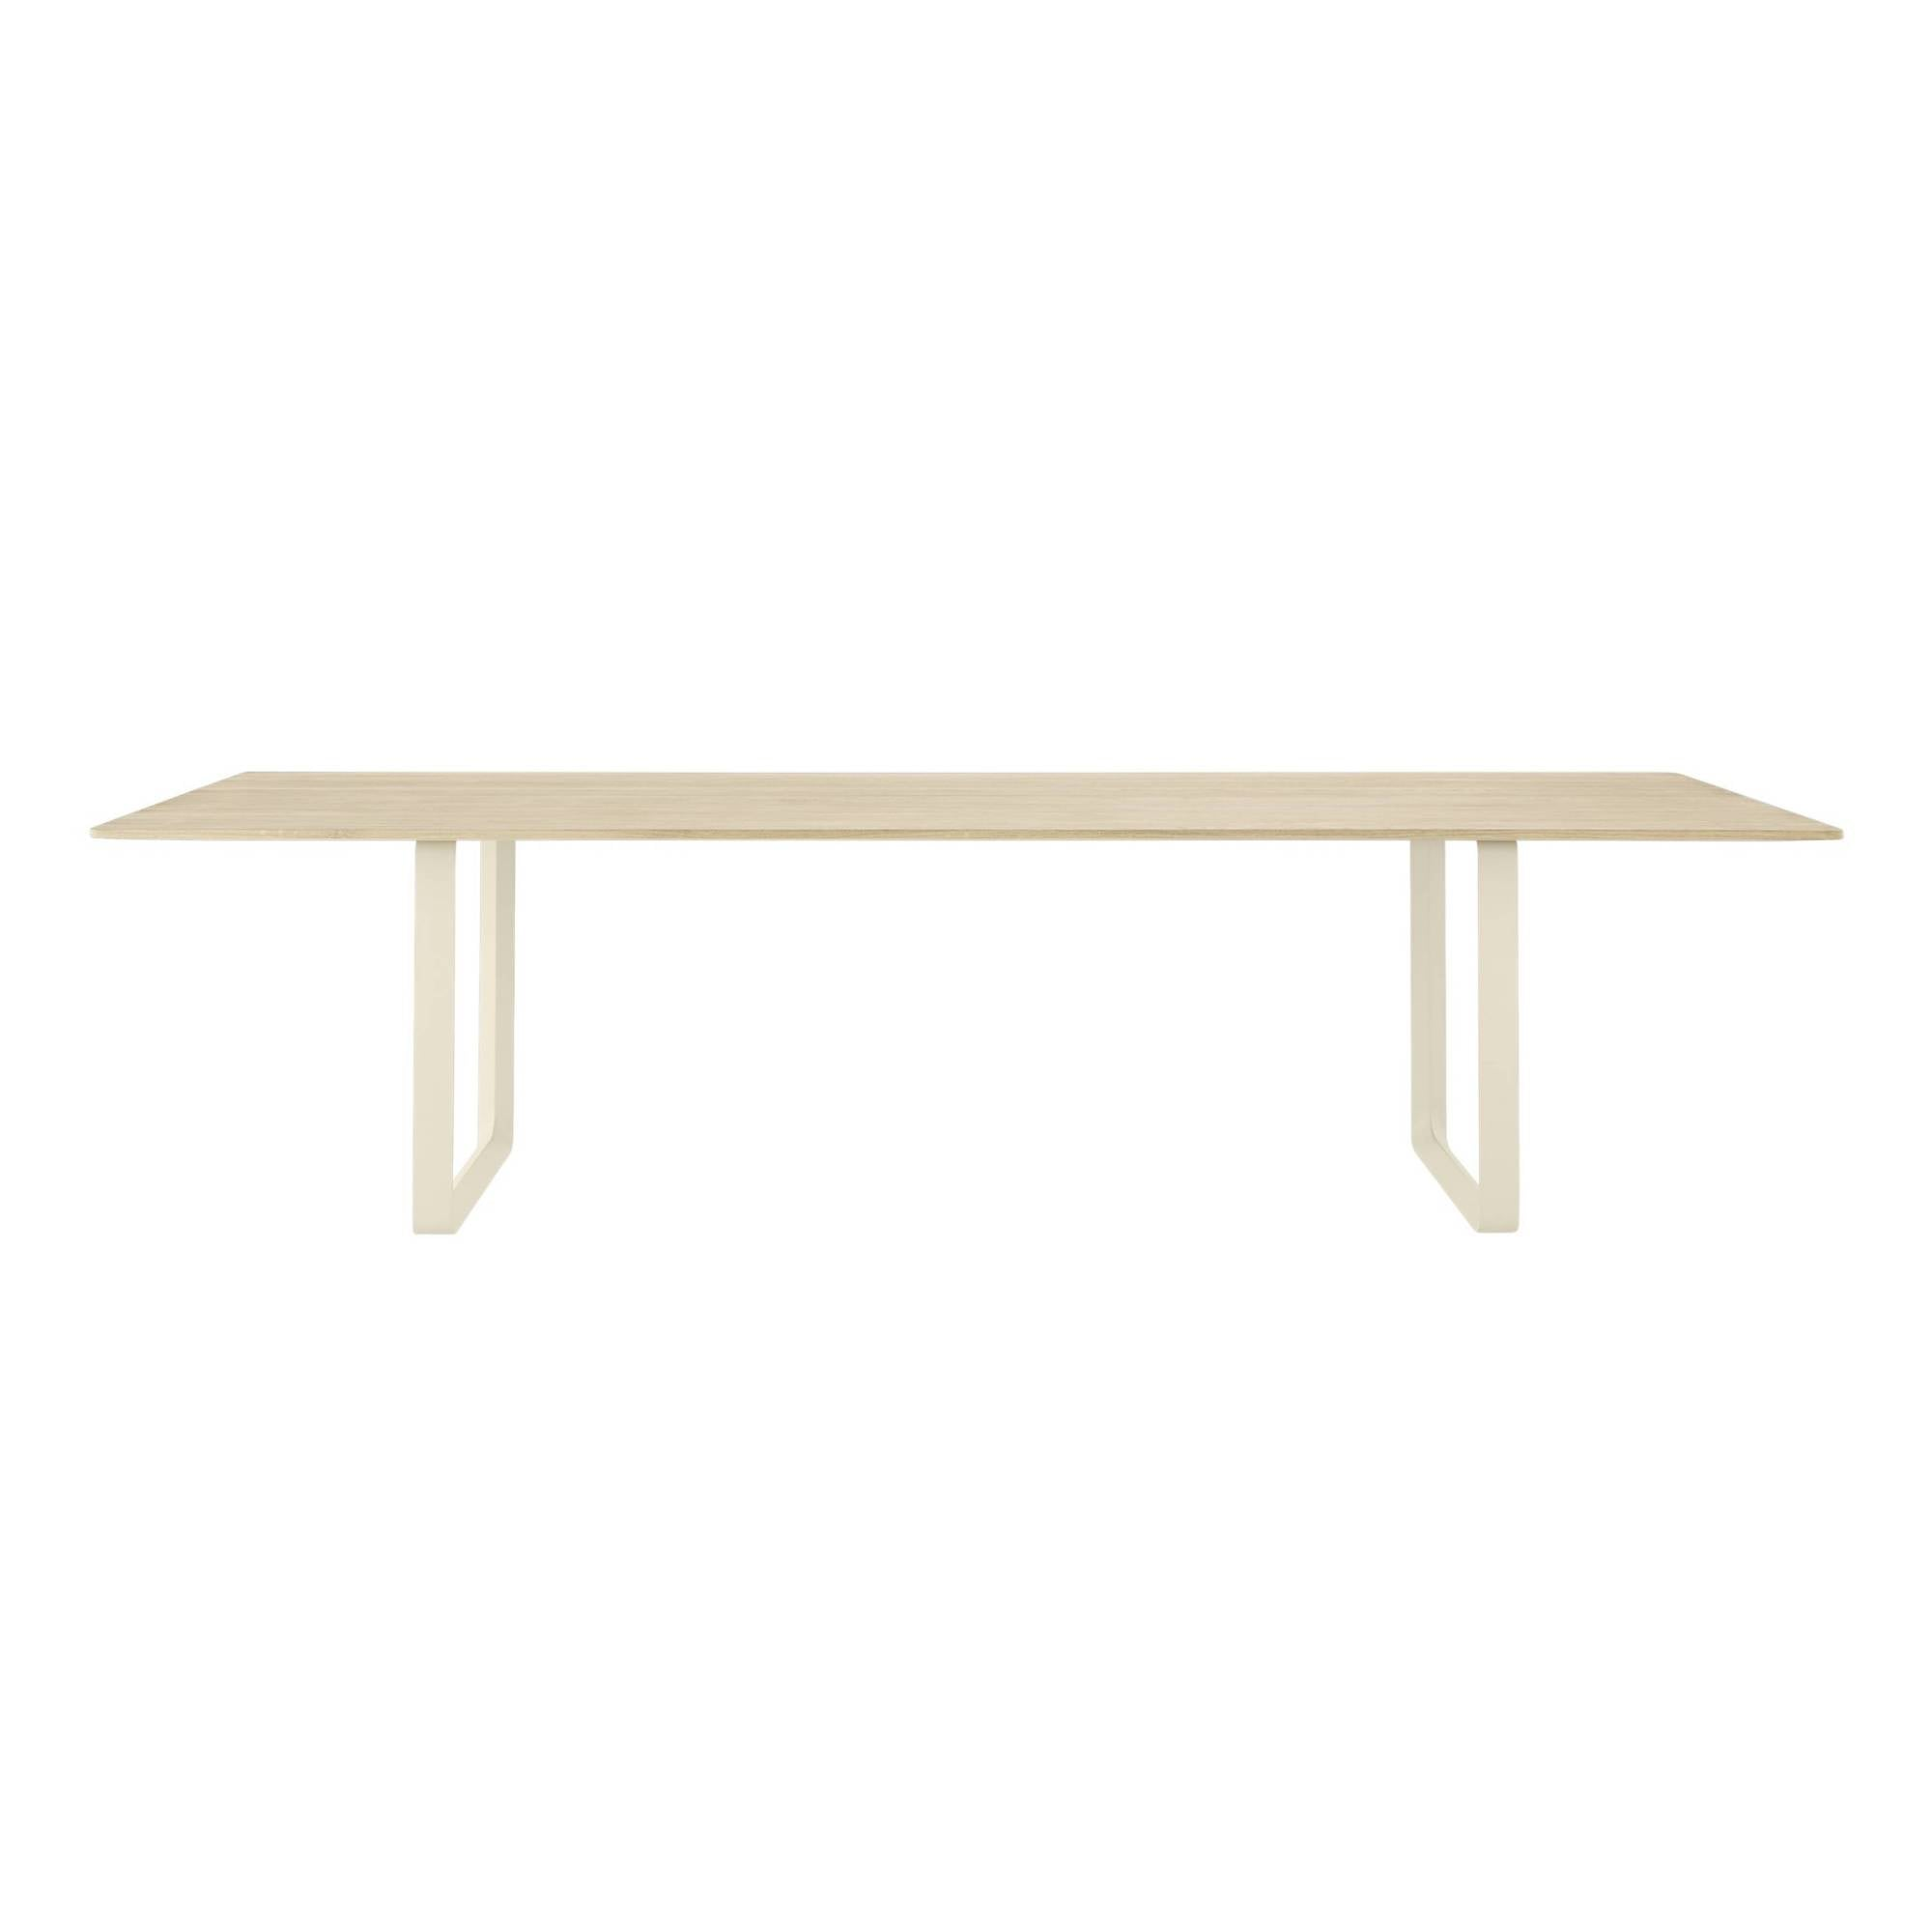 70/70 Table: Solid Oak + XX Large + Sand